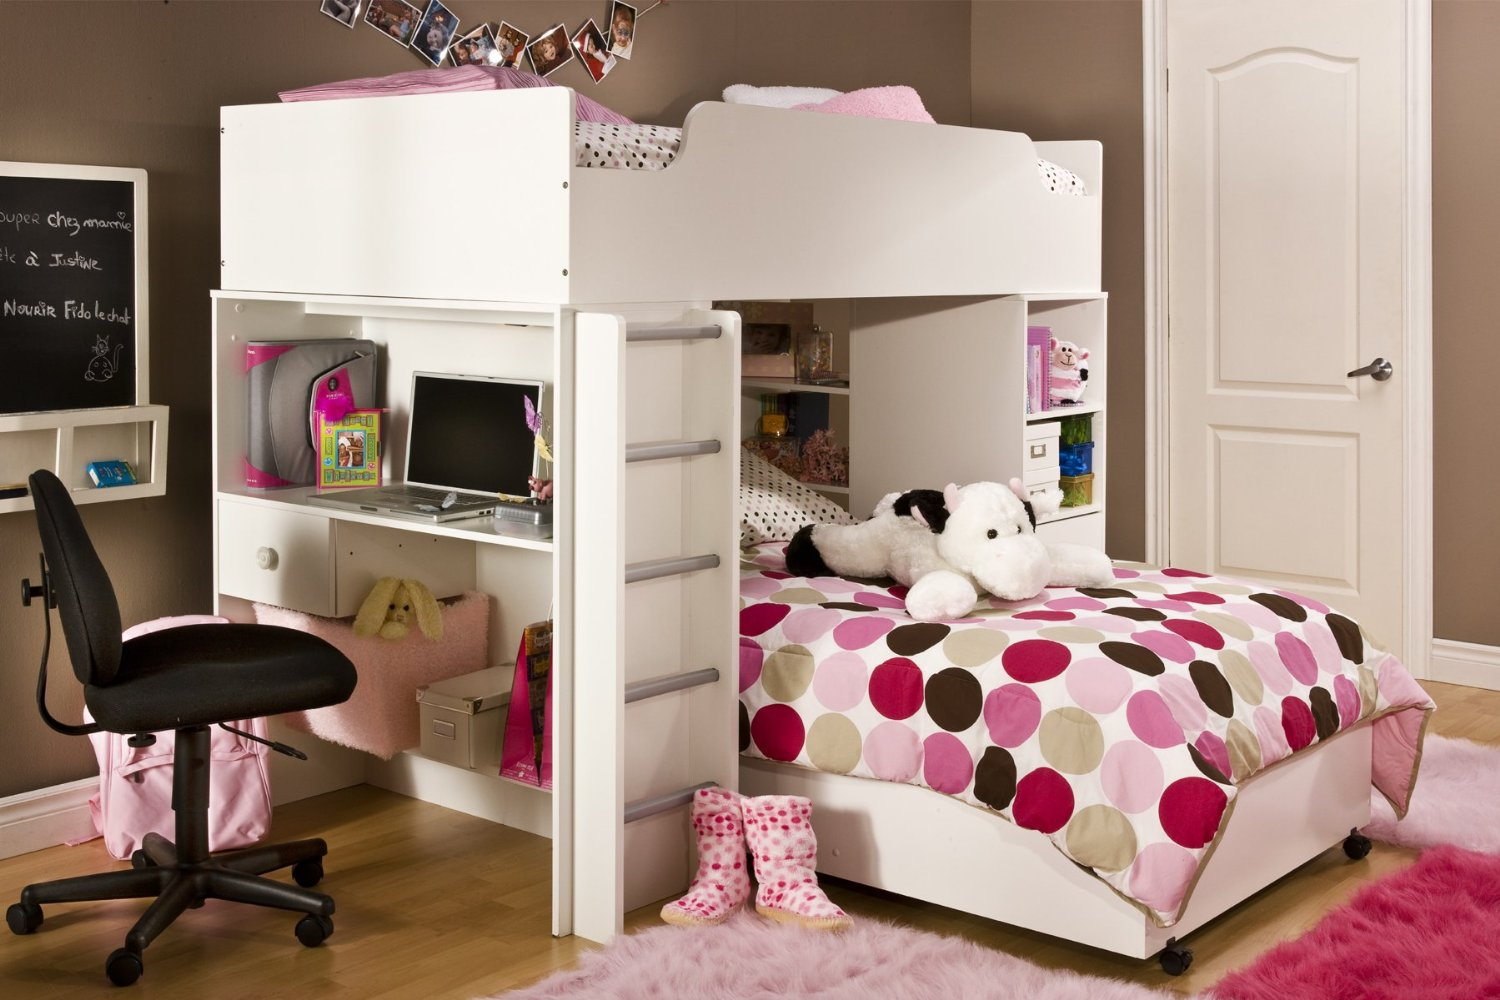 Charming Wooden Loft Beds For Teenagers In White With Dotted Bedding Plus Desk On Wooden Floor Matched With Tan Wall For Great Teens Bedroom Decor Ideas